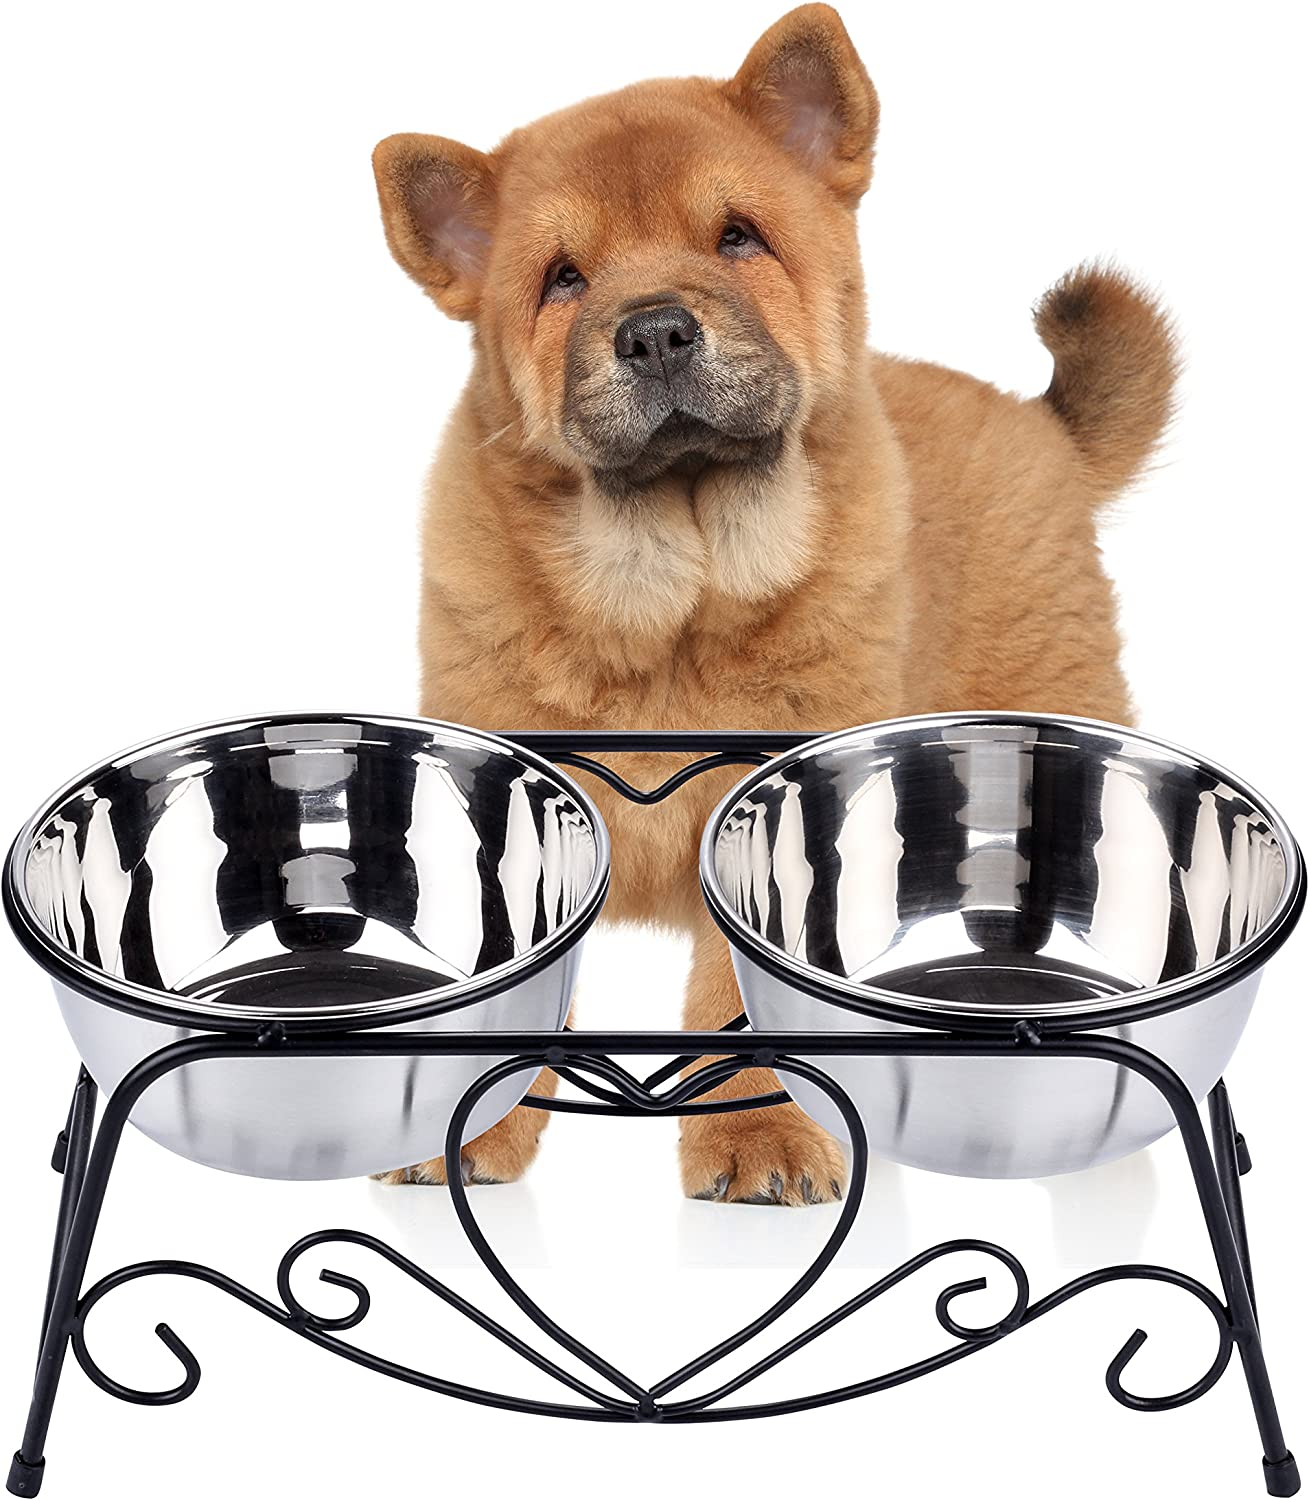 CICO Pet Feeder for Dog Cat, Stainless Steel Food and Water Bowls with Iron Stand